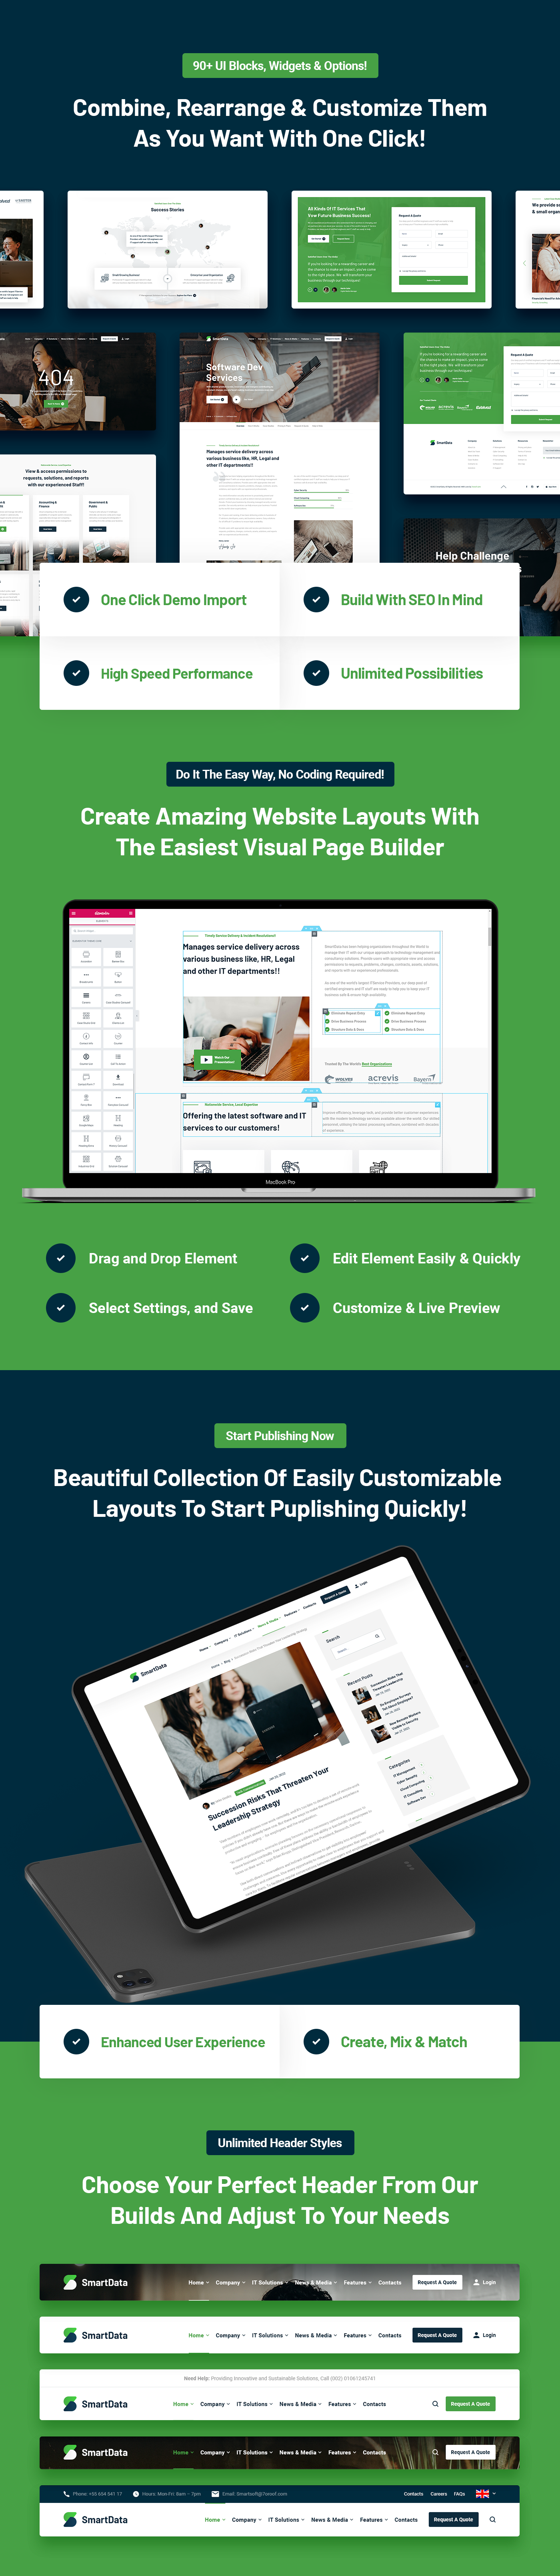 Smartdata - IT Solutions & Services WordPress Theme - 7